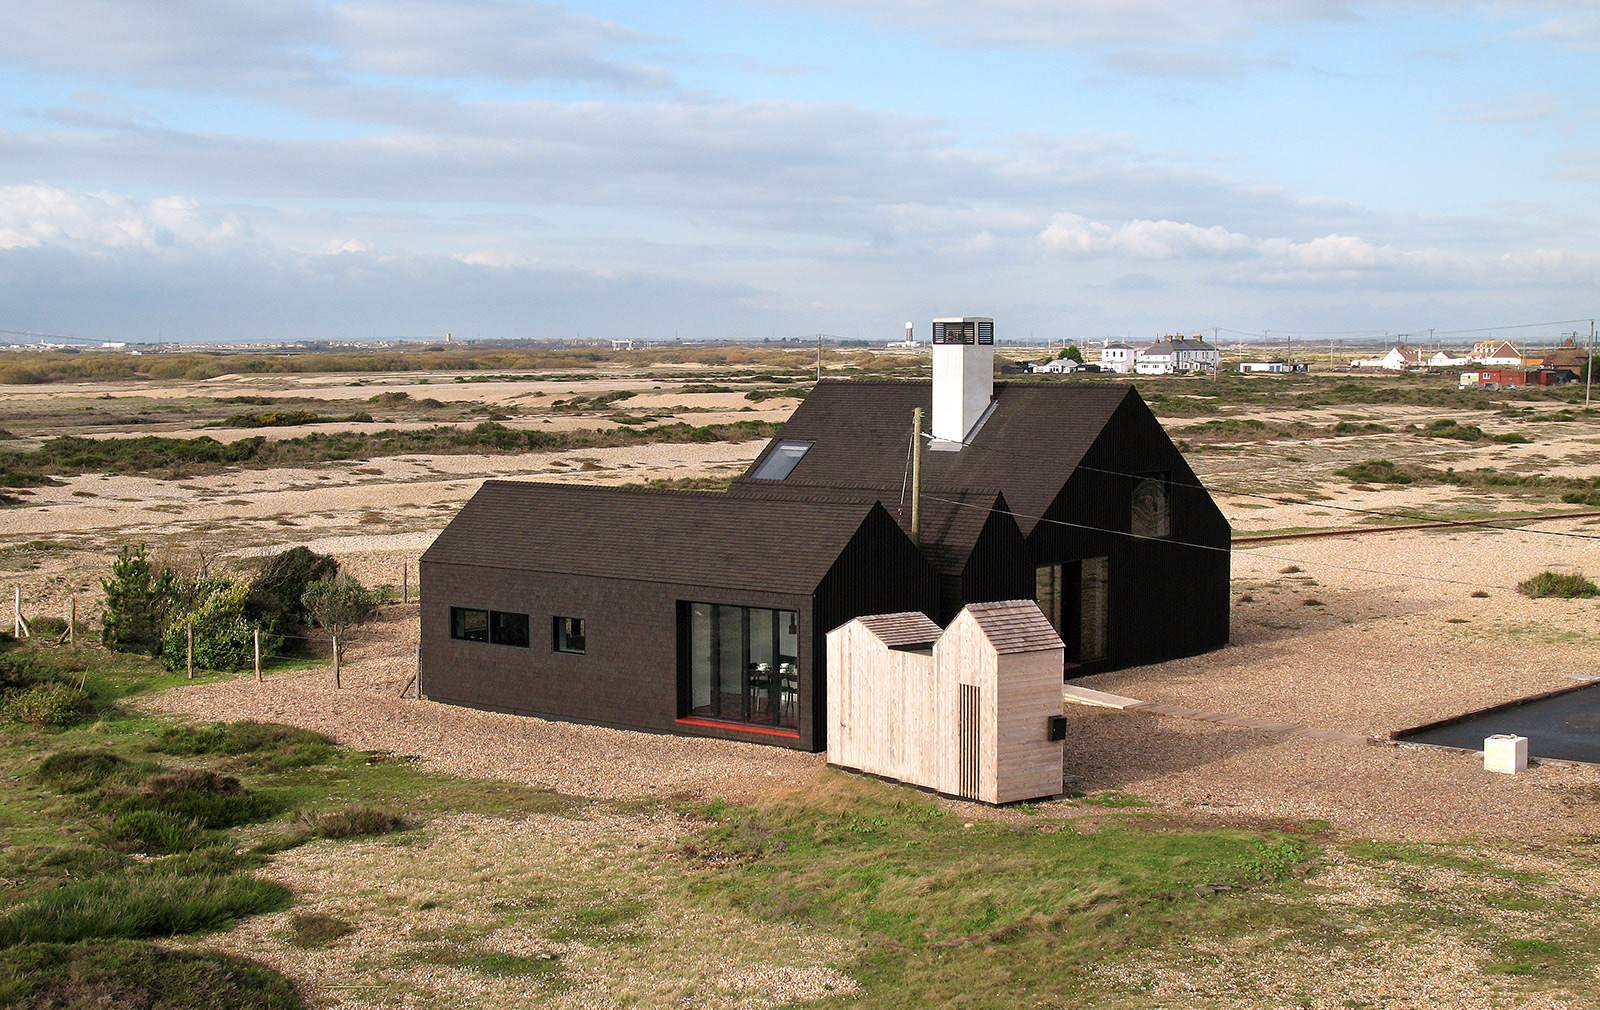 Dungeness britain s only desert is blooming with House architects